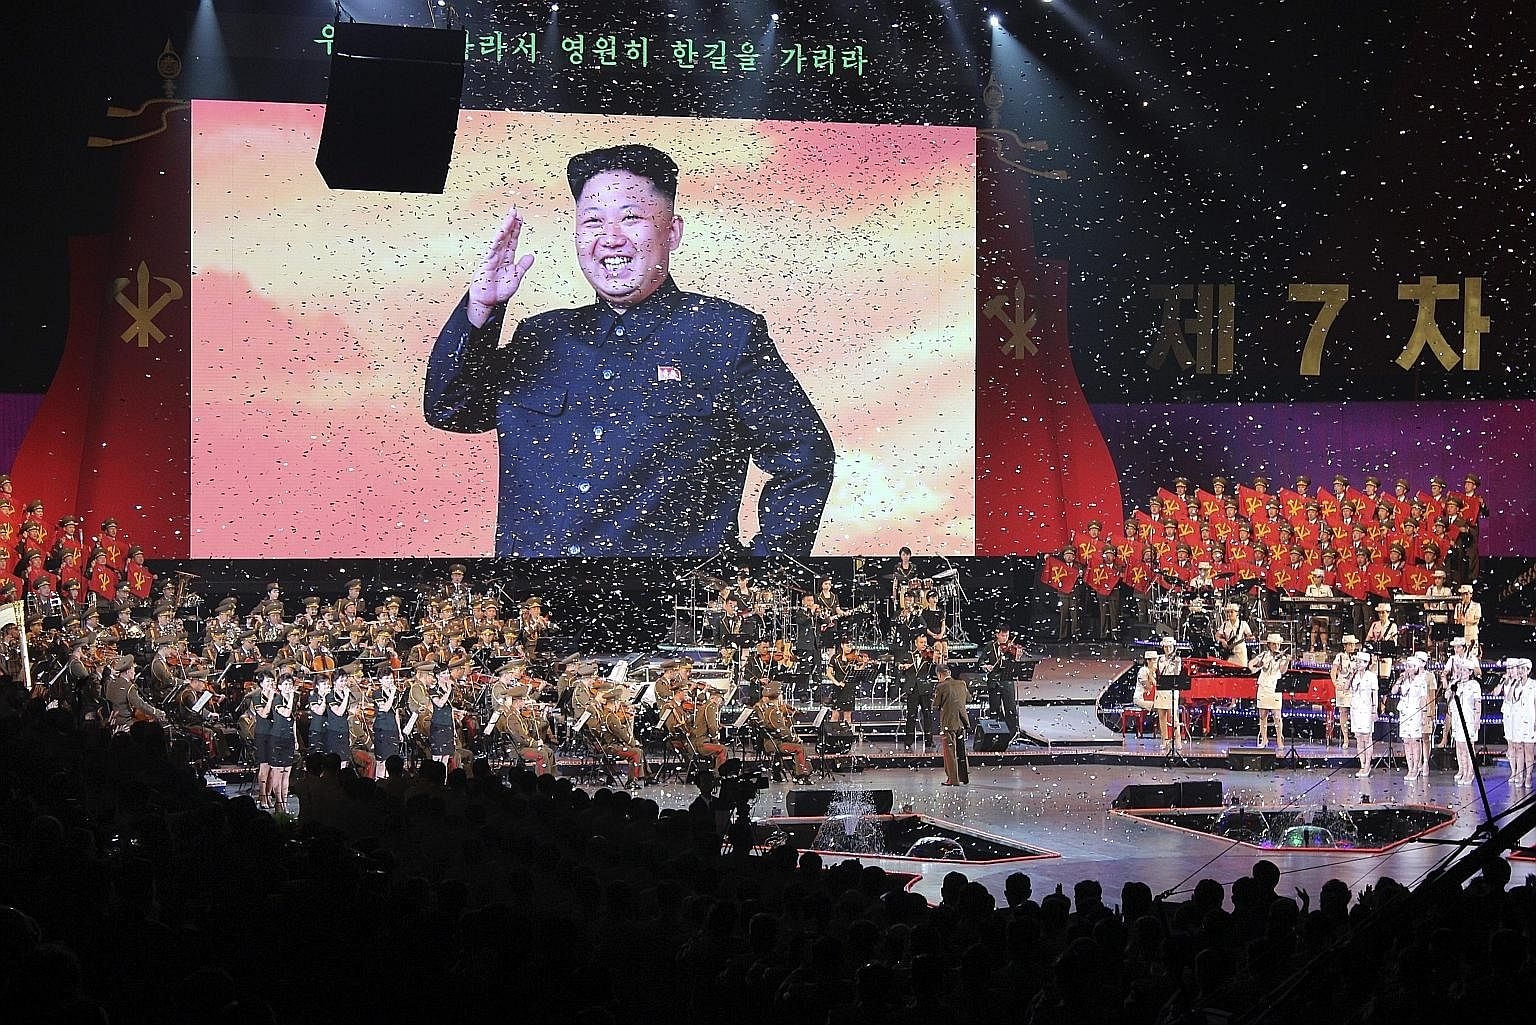 A concert featuring some of Mr Kim's favourite pop bands after the closing ceremony of the Korean Workers' Party's congress in Pyongyang last Wednesday.